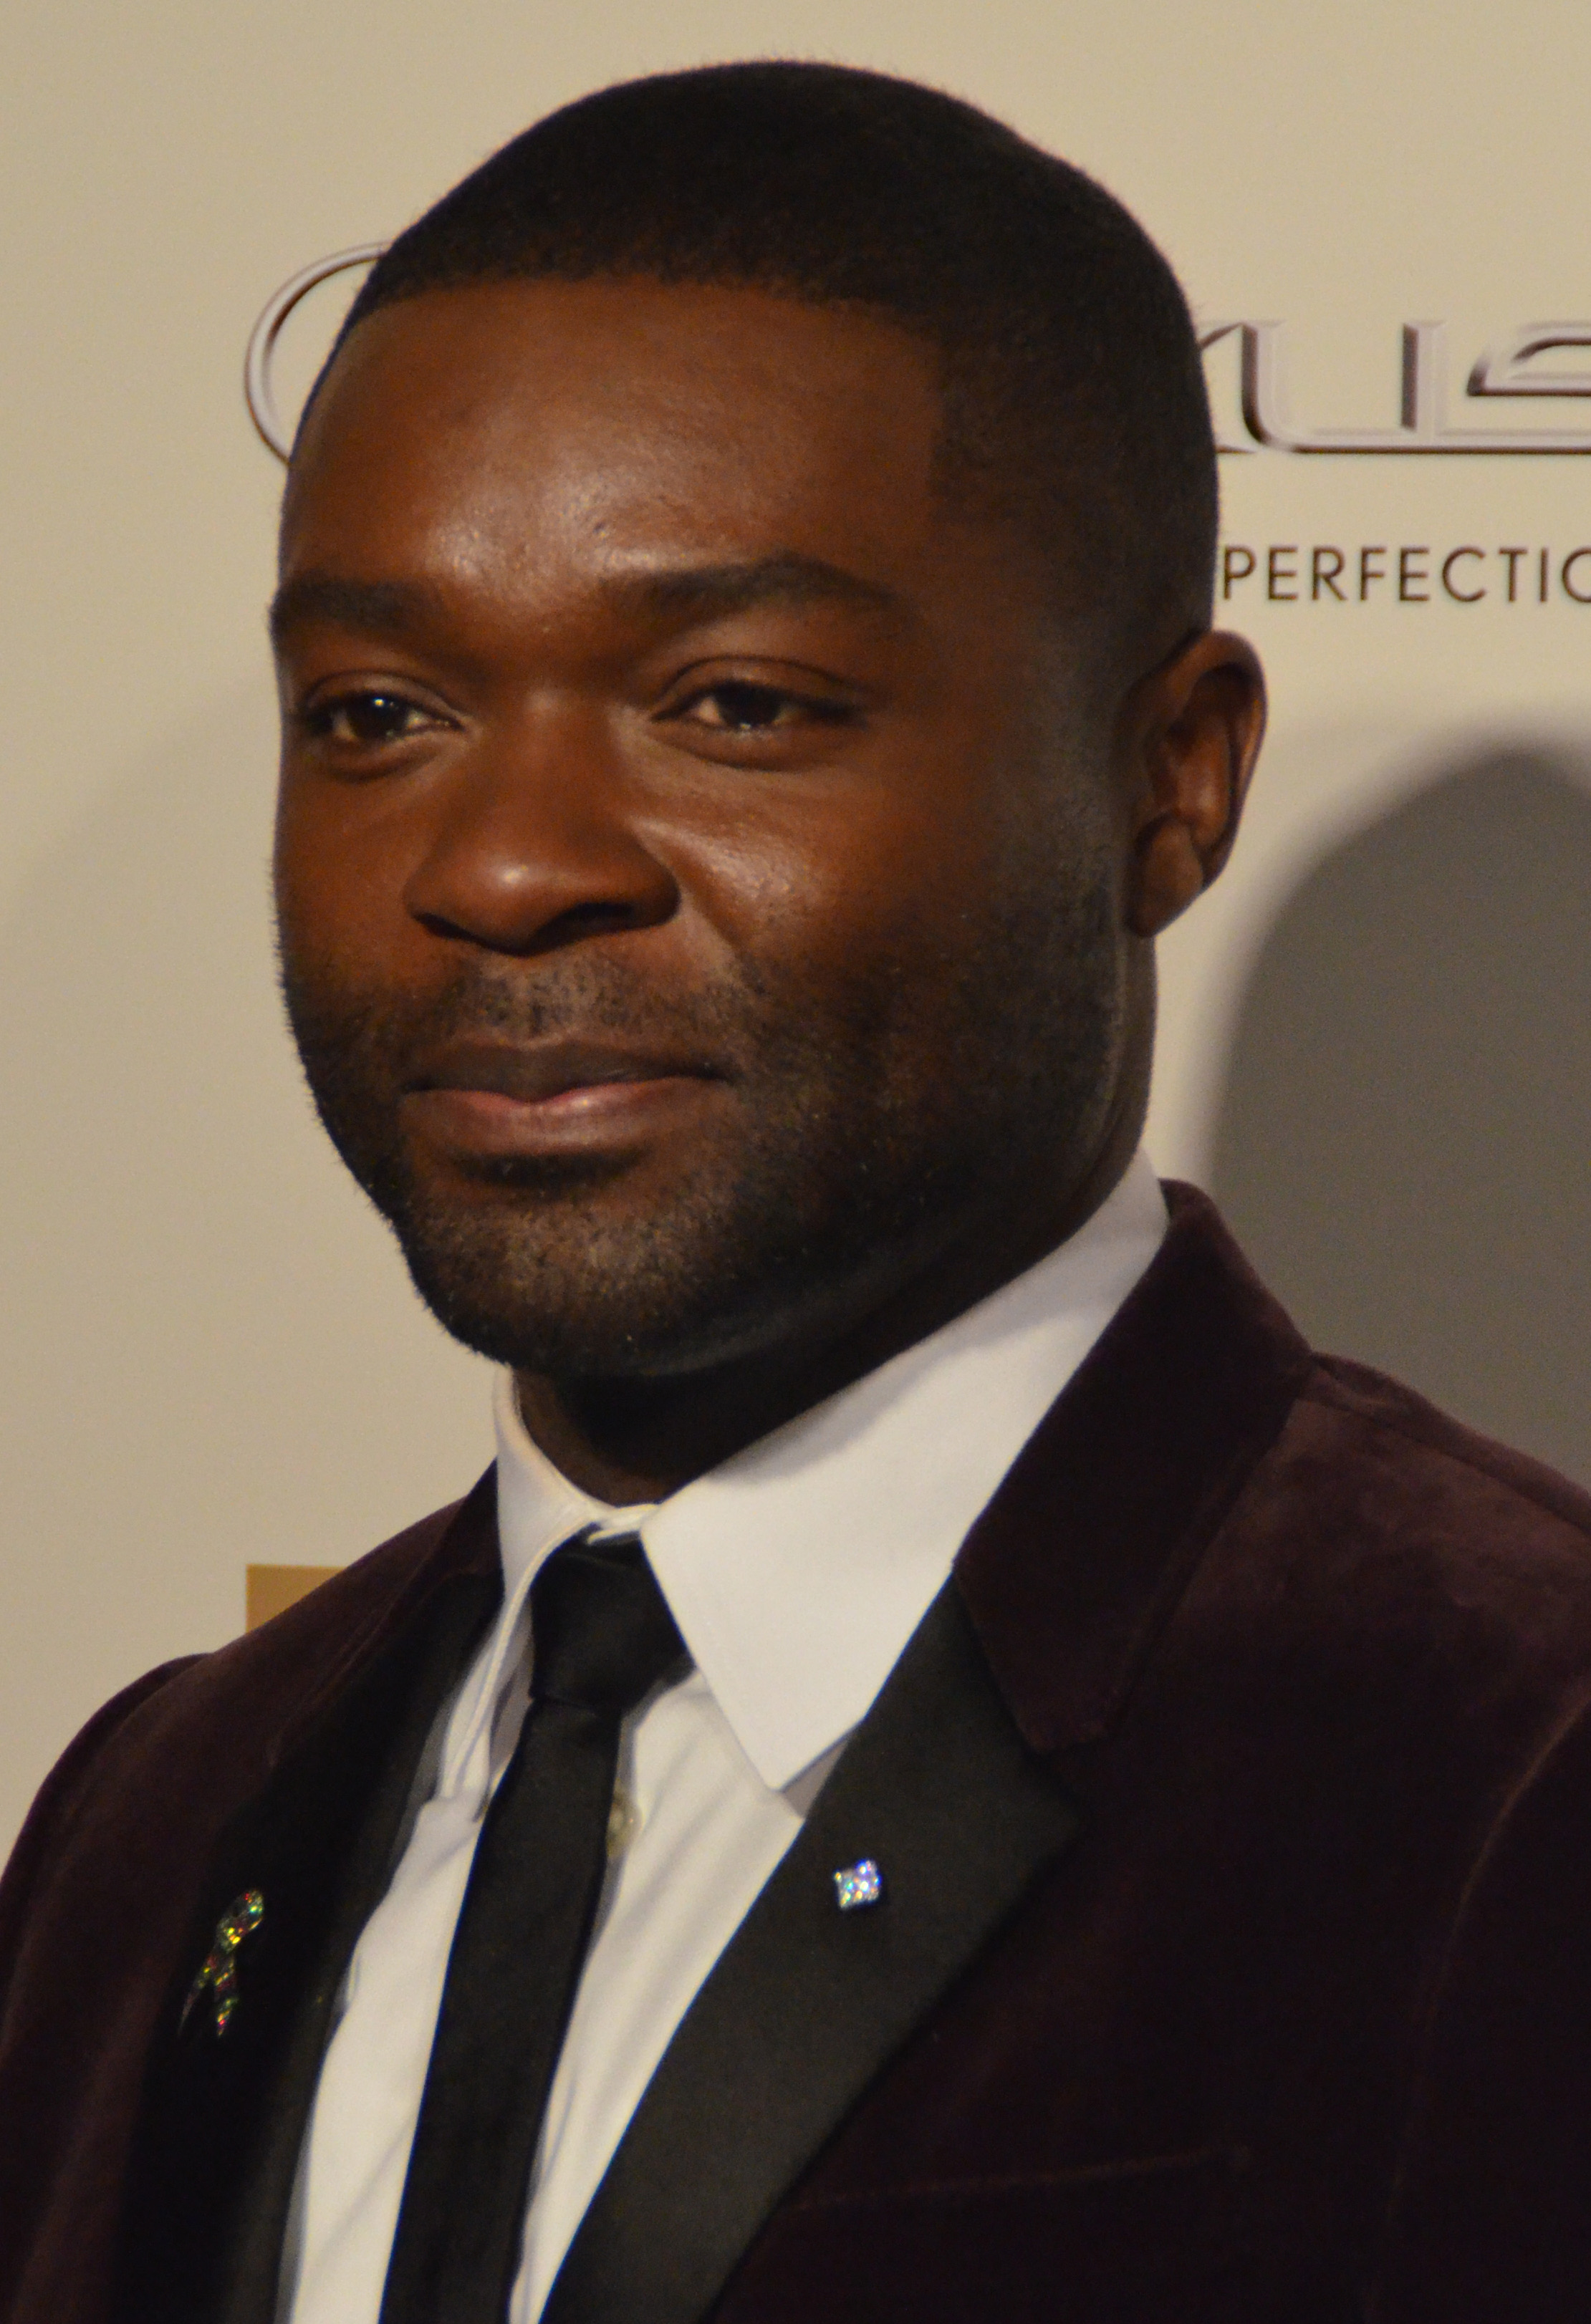 david oyelowo golden globesdavid oyelowo wife, david oyelowo and jessica oyelowo, david oyelowo black panther, david oyelowo net worth, david oyelowo, david oyelowo twitter, david oyelowo selma, david oyelowo interview, david oyelowo height, david oyelowo pronunciation, david oyelowo bond, david oyelowo instagram, david oyelowo captive, david oyelowo biography, david oyelowo golden globes, david oyelowo jimmy fallon, david oyelowo brad pitt, david oyelowo family, david oyelowo movies, david oyelowo imdb